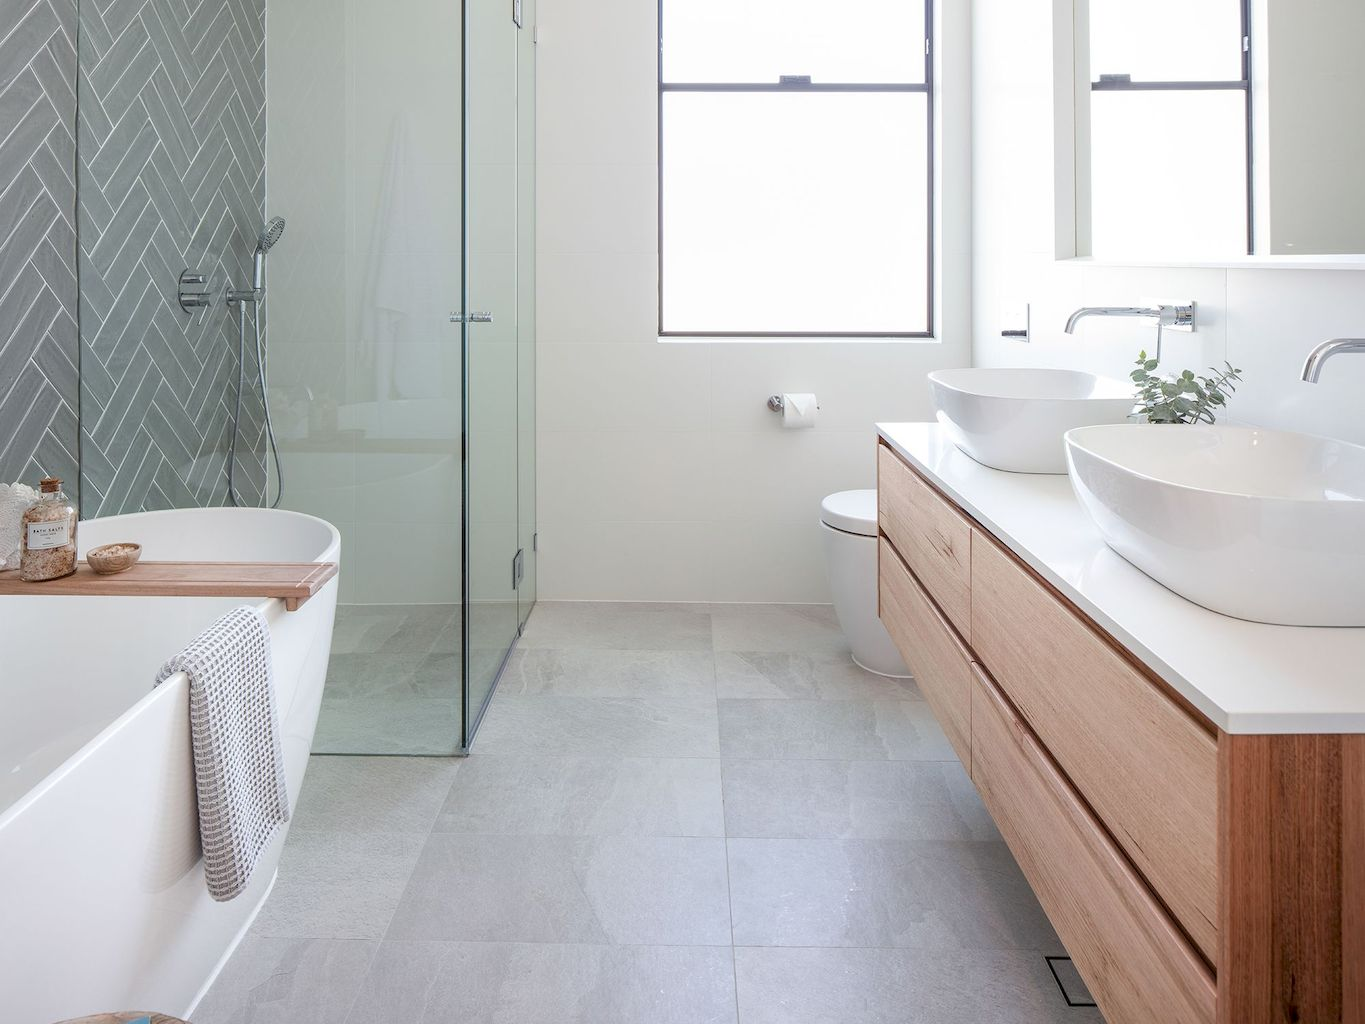 Must See Bathroom Tiles Ideas   How to Configure It in Small Space